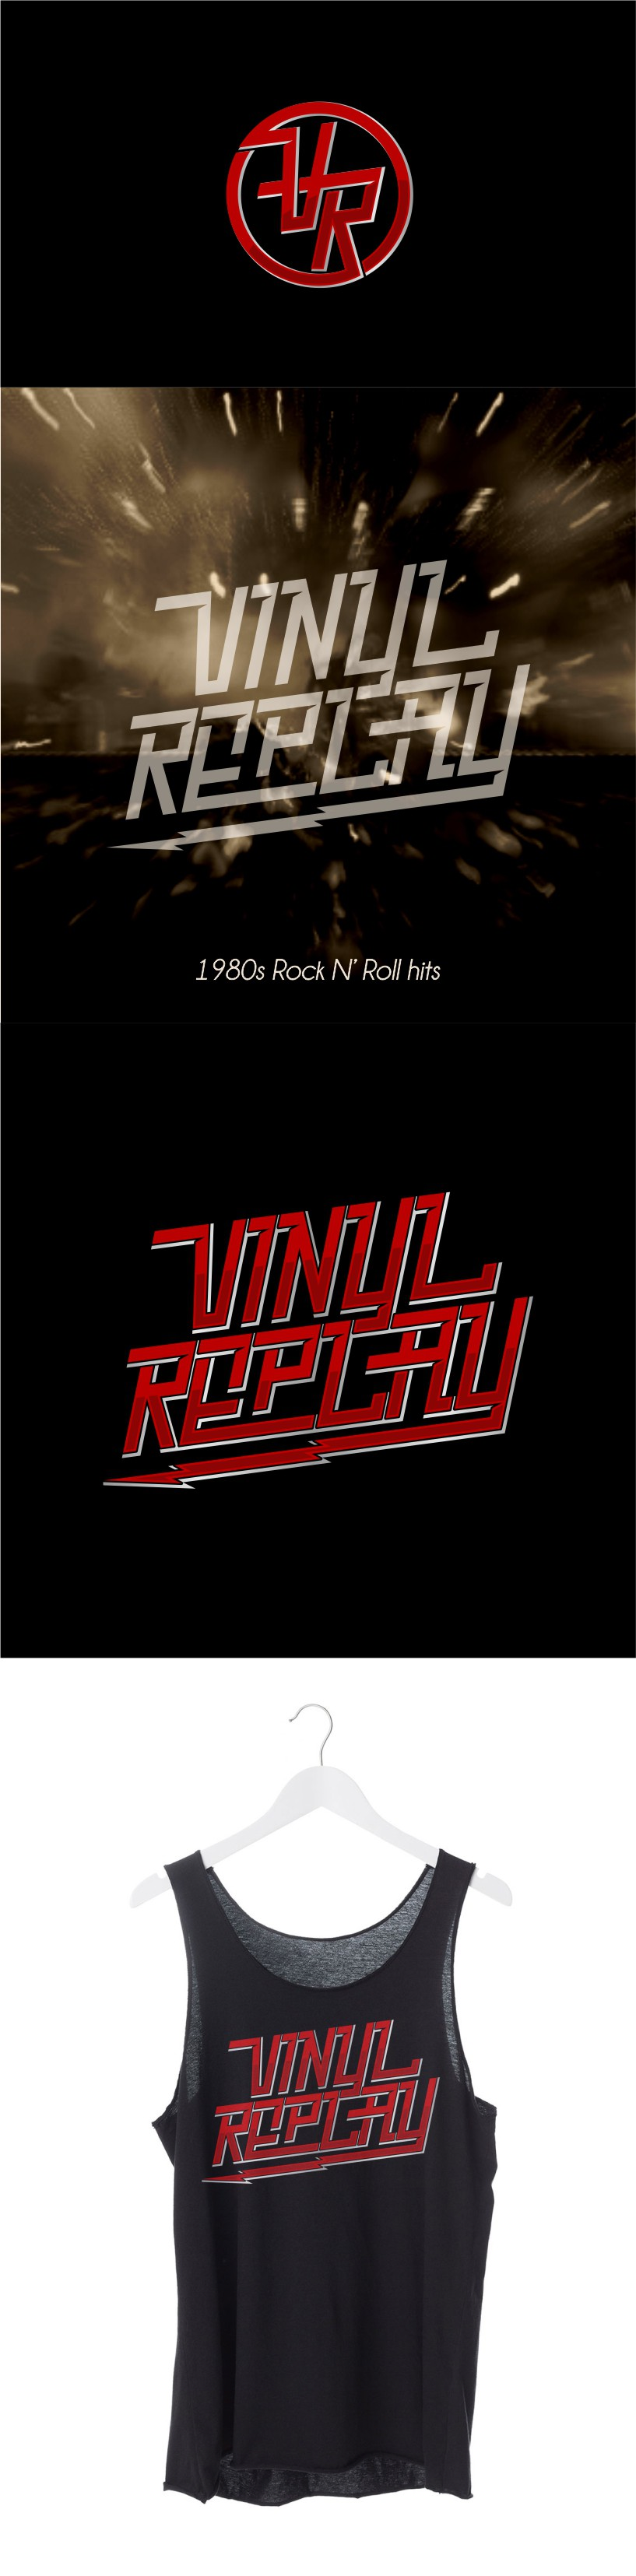 Design the ultimate rock and roll logo for Vinyl Replay